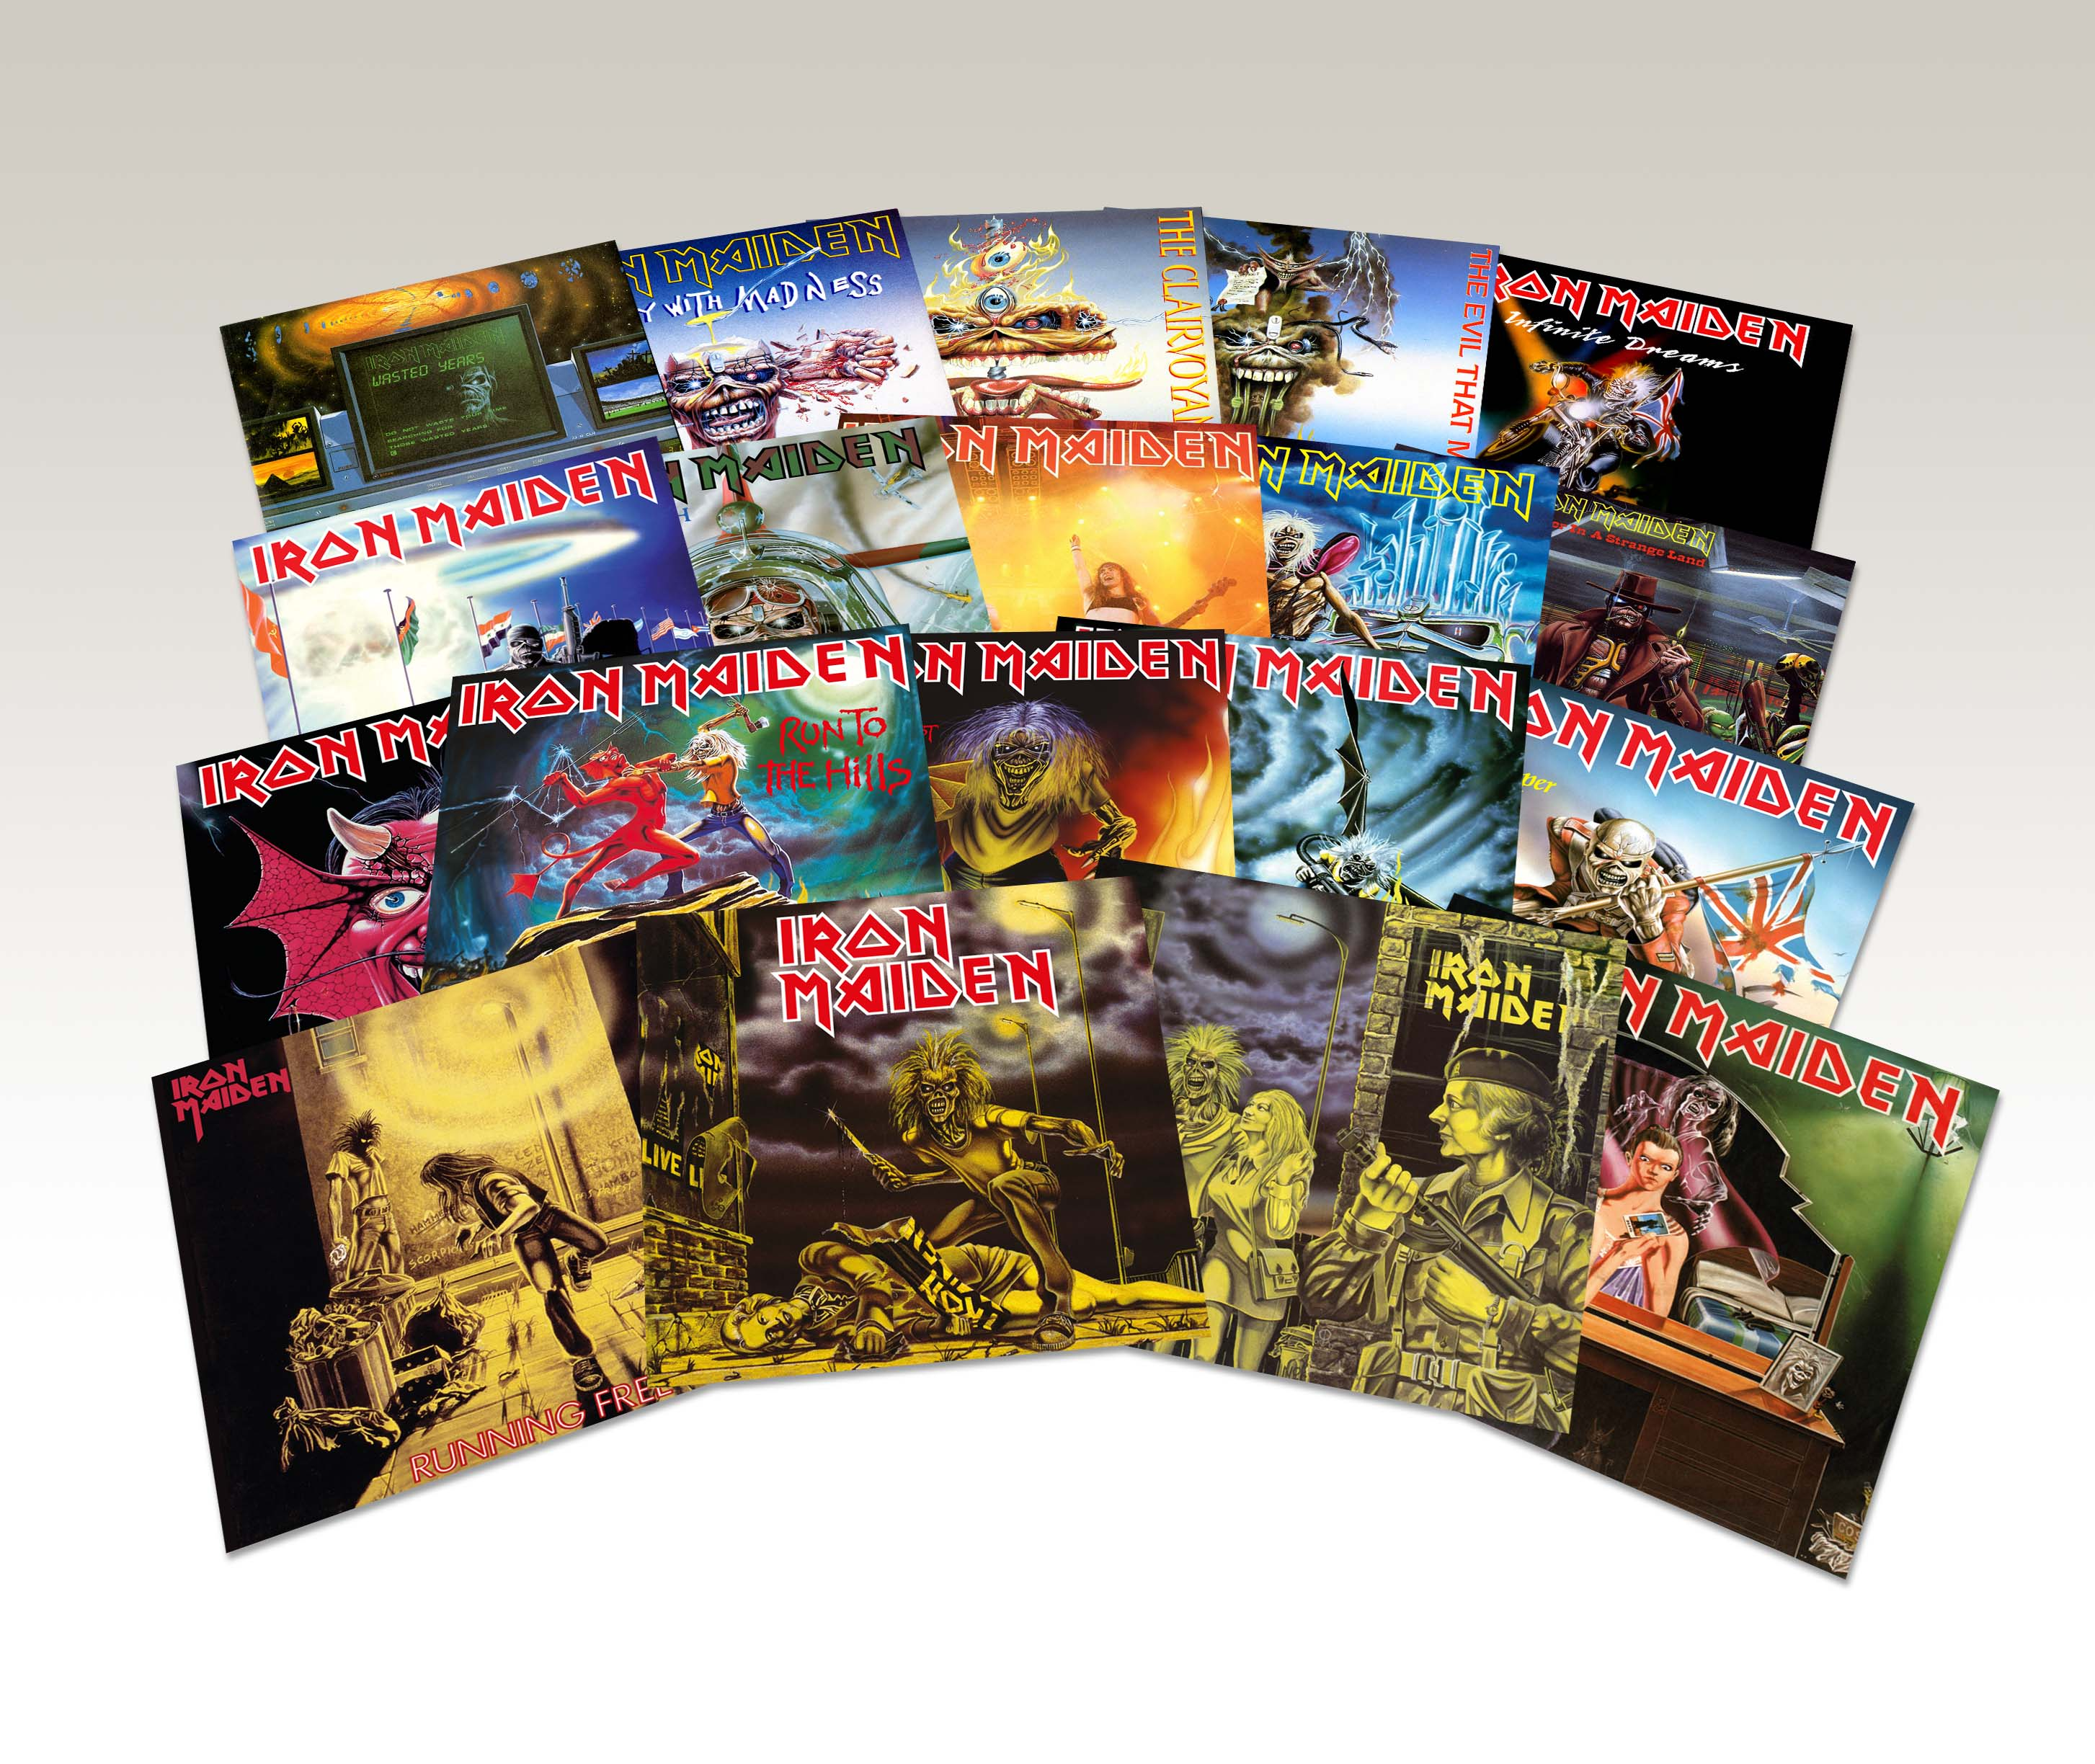 Iron Maiden Release More Limited Vinyl